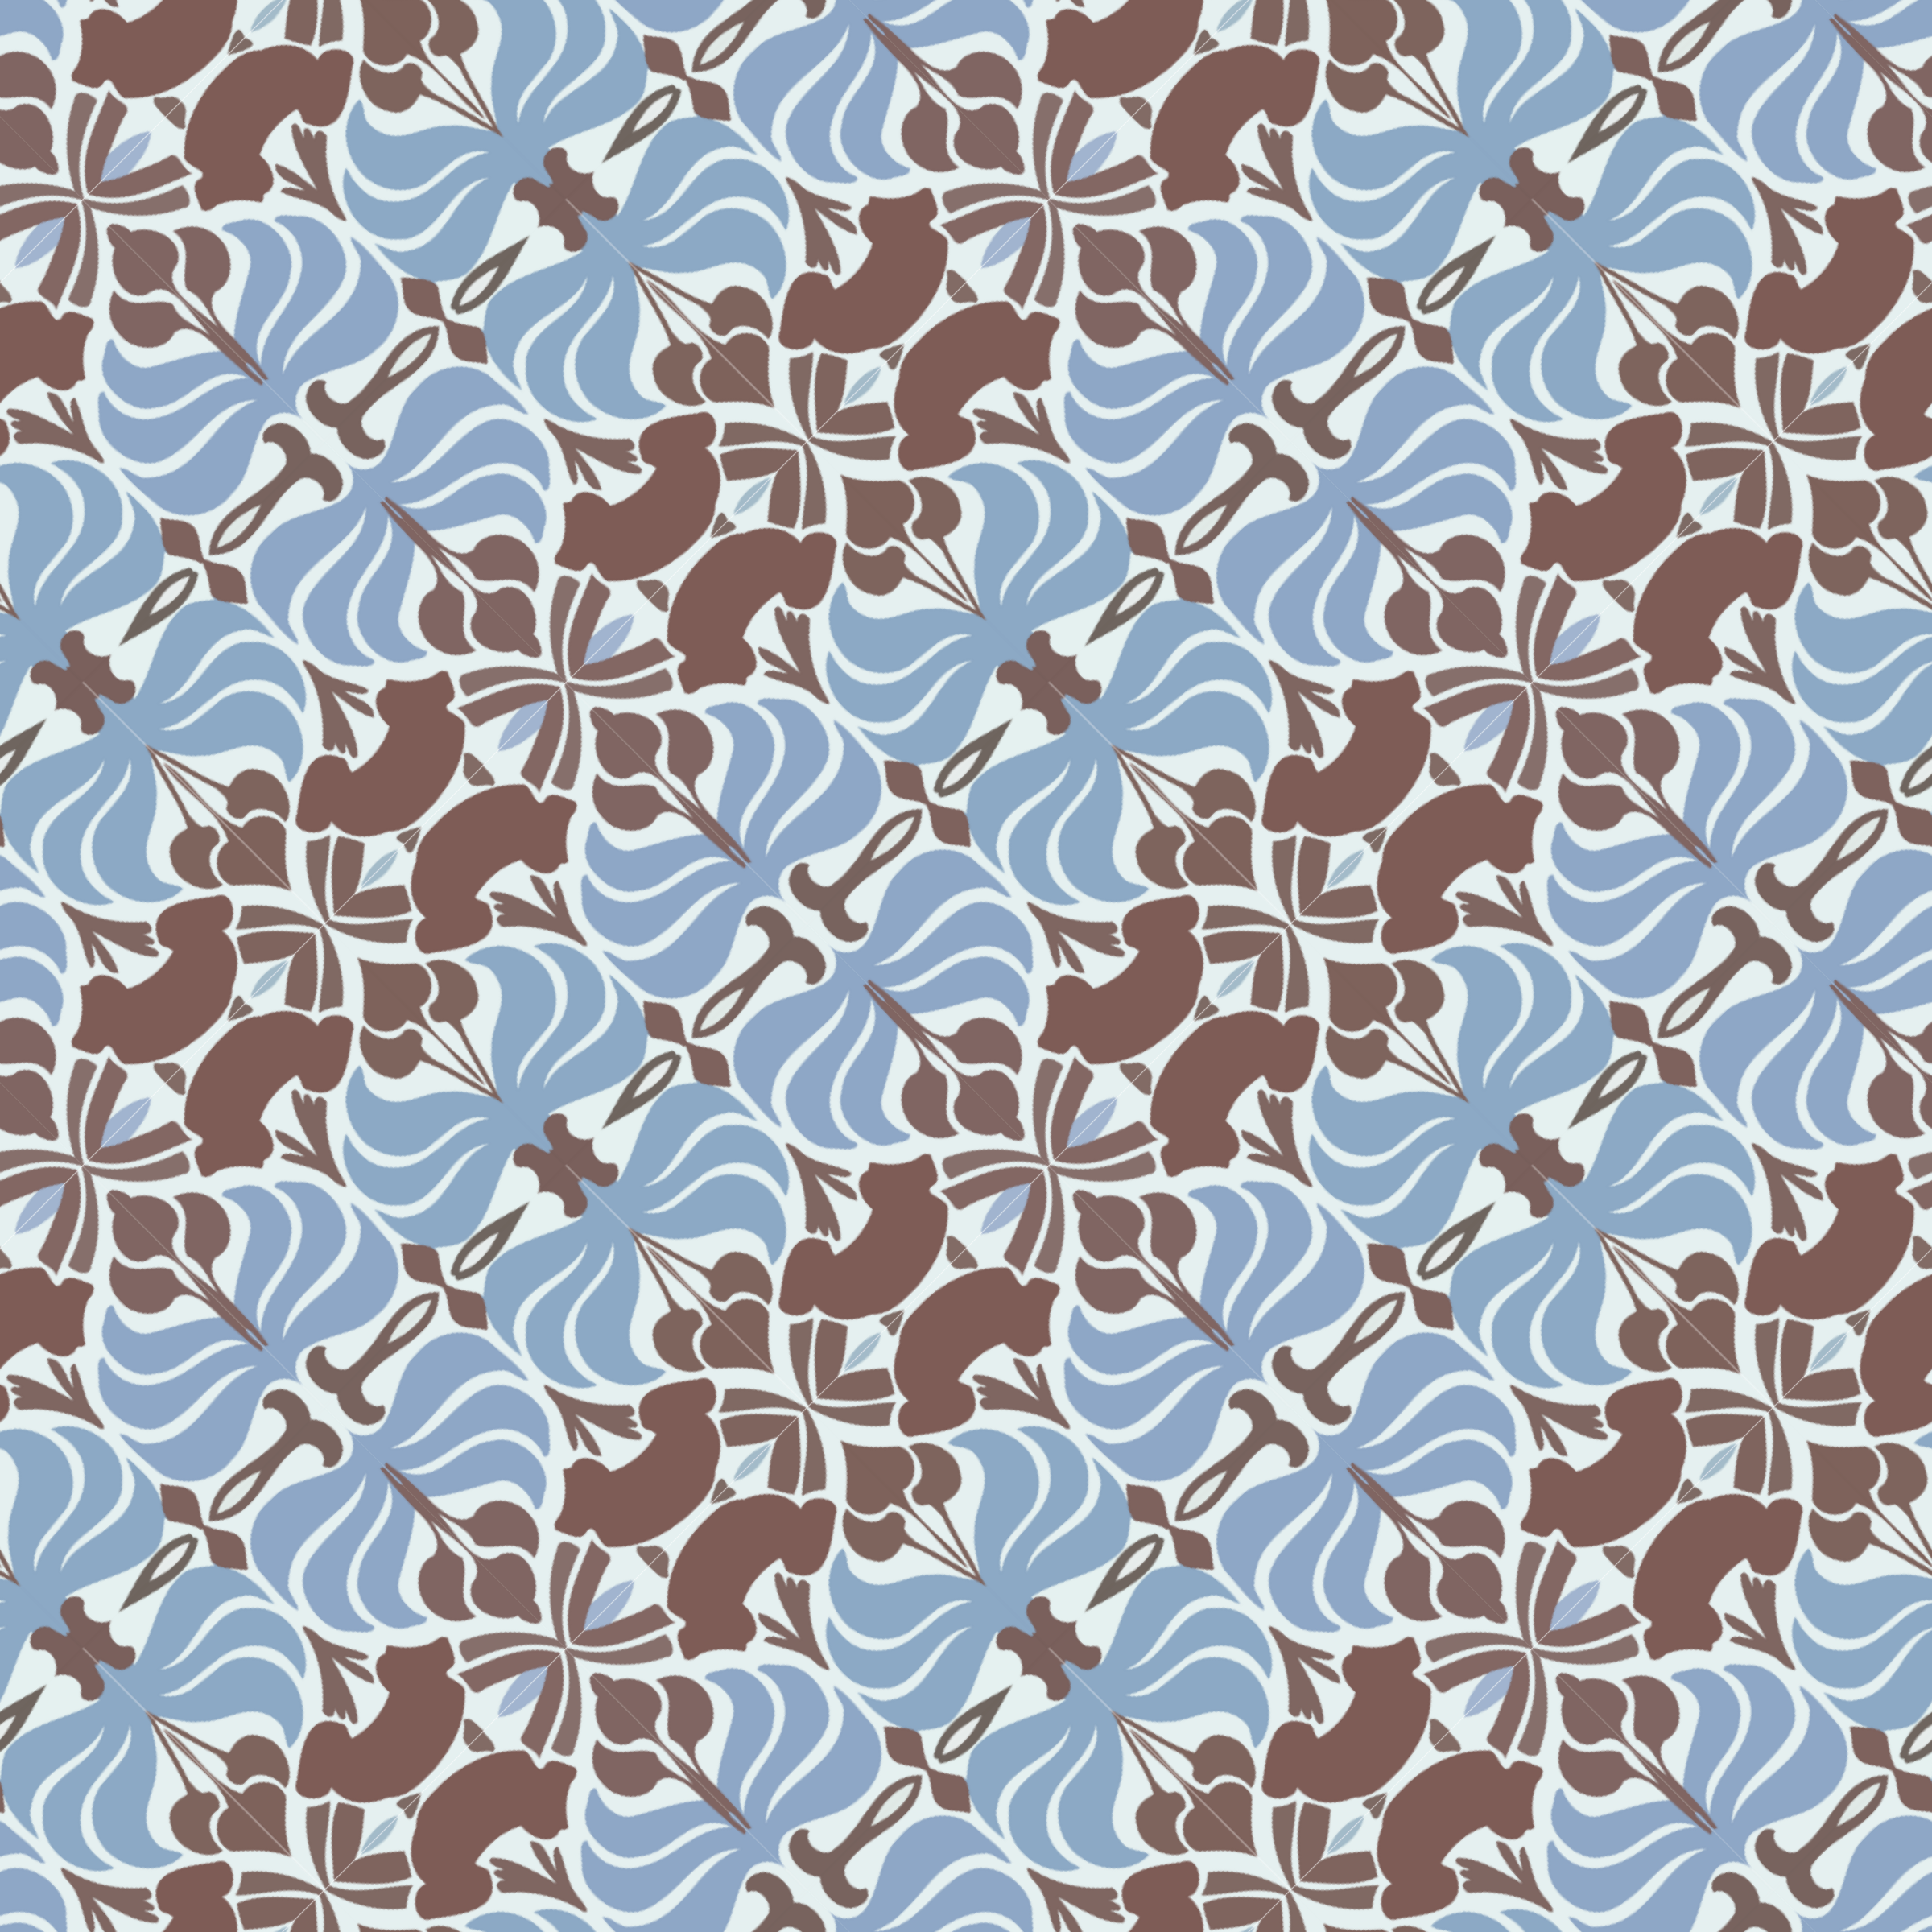 Background pattern 167 (colour 2) by Firkin